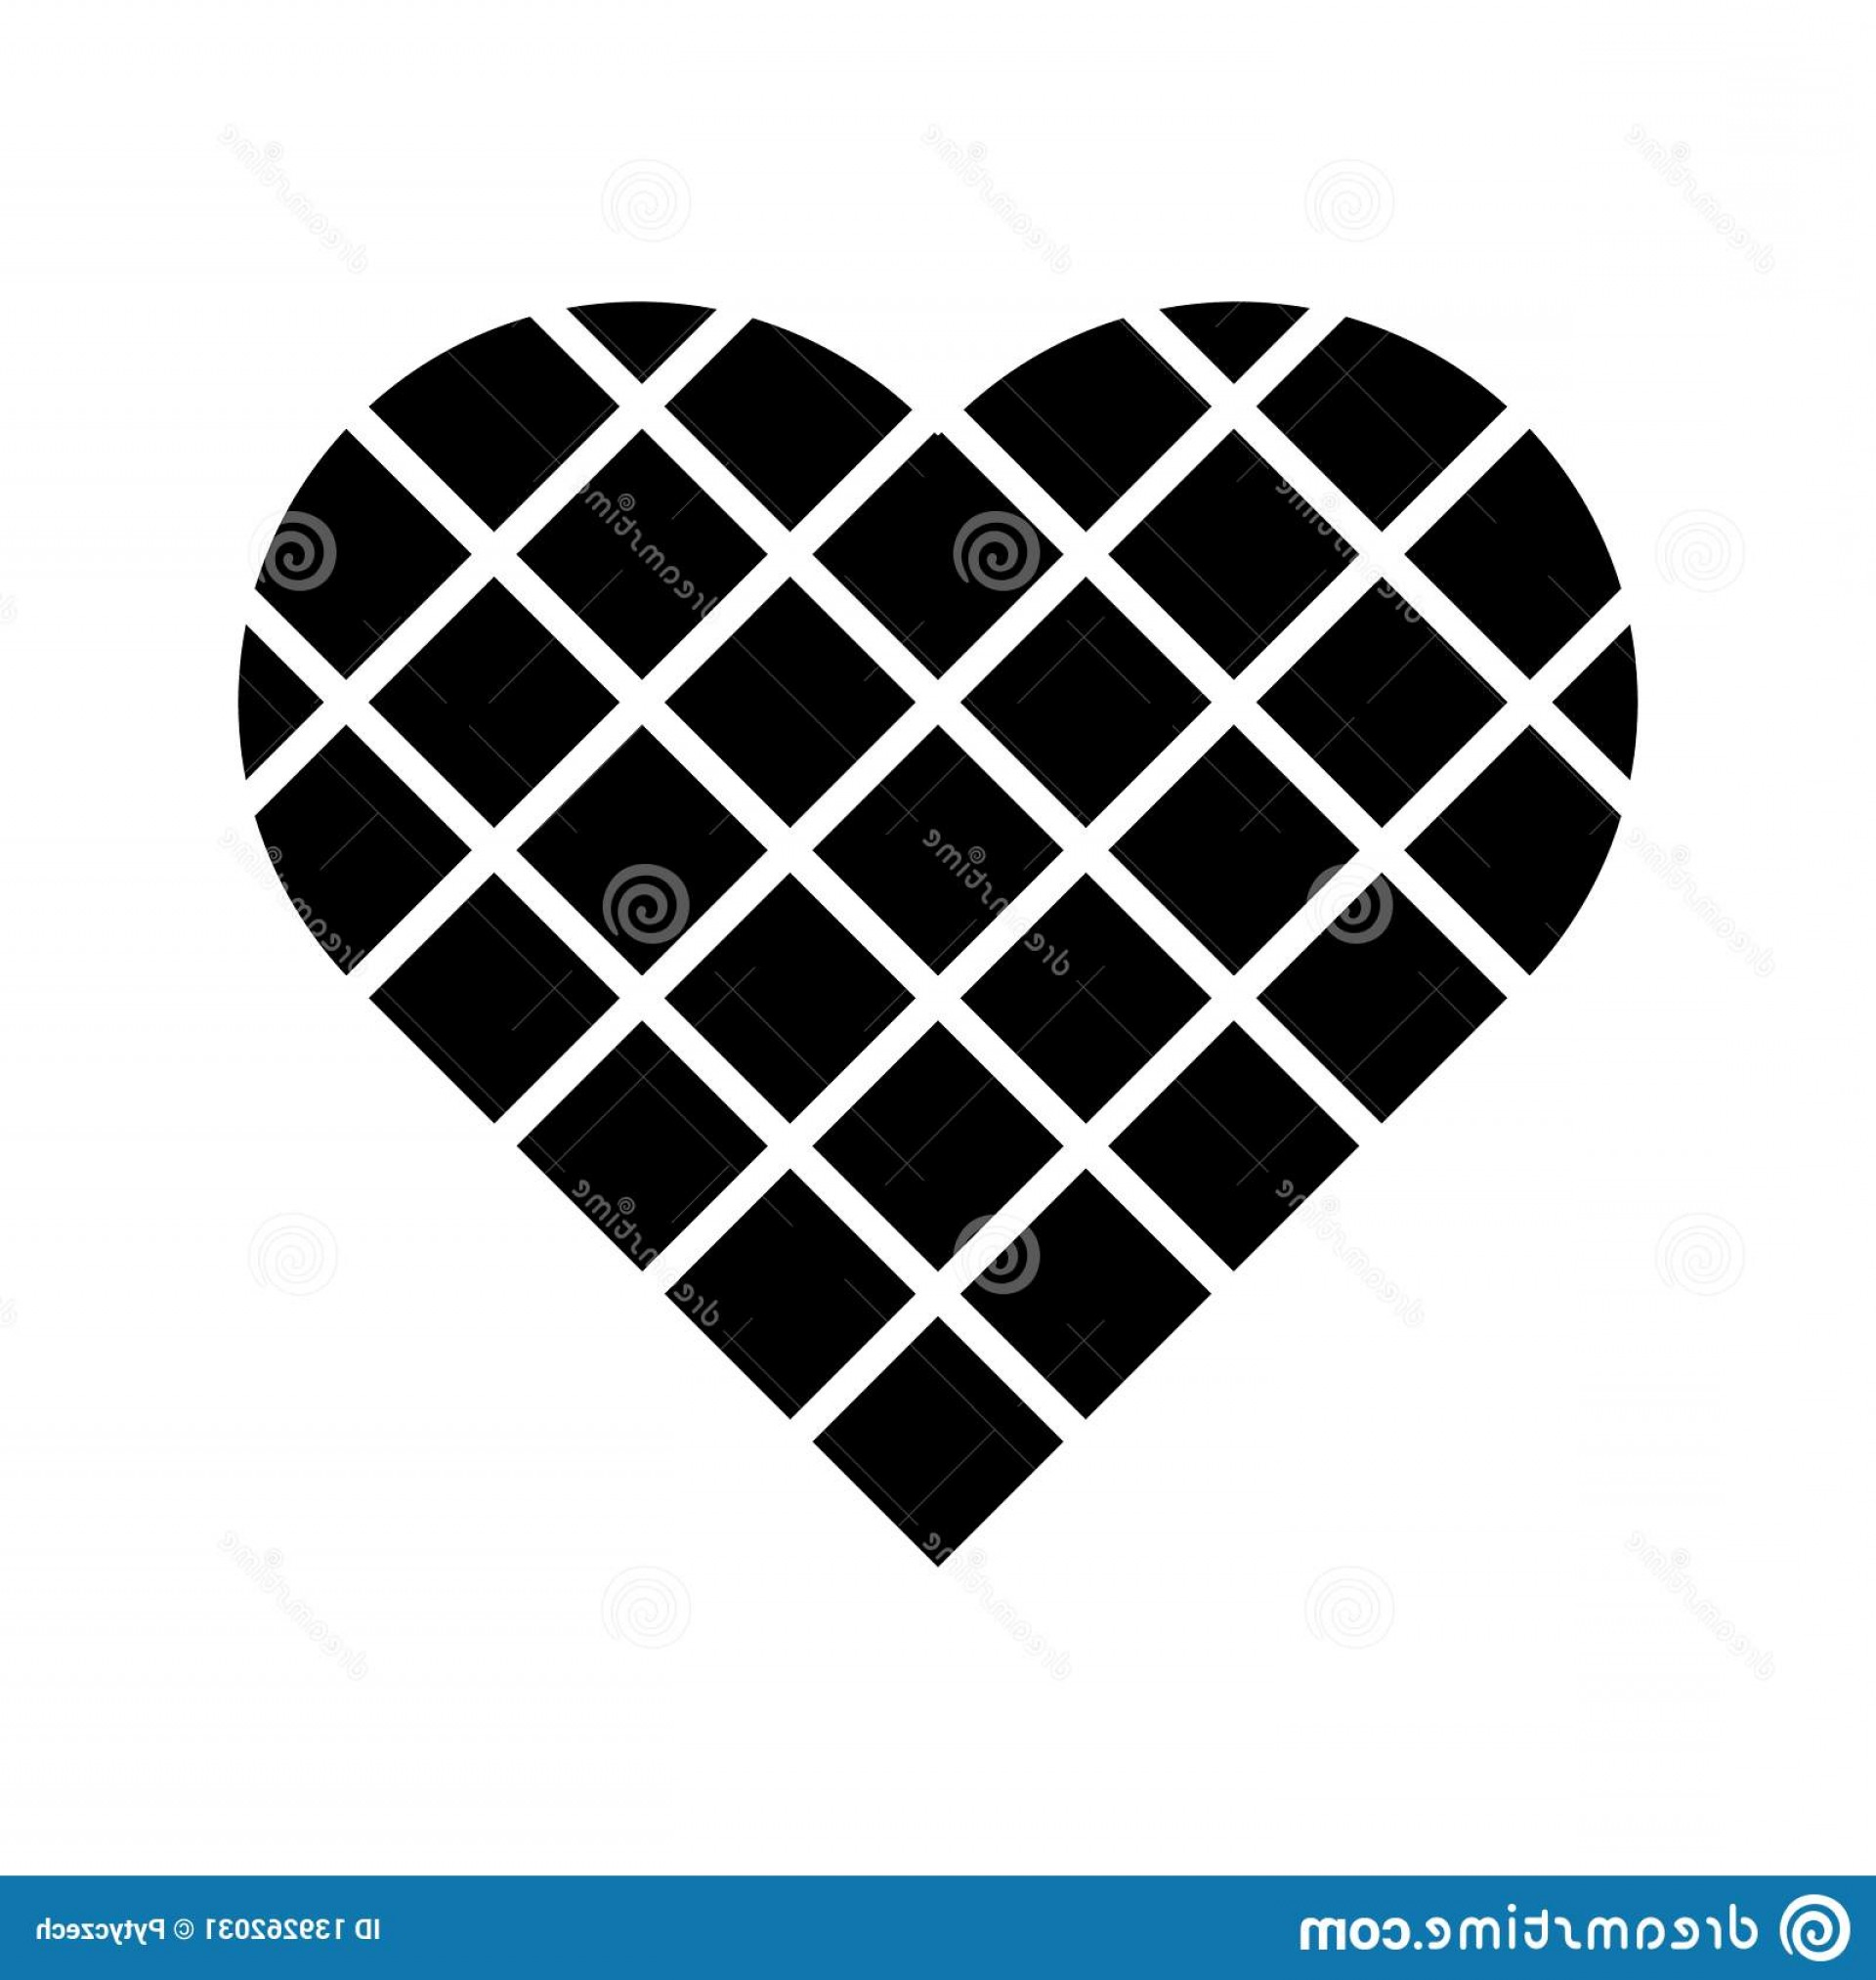 Vector Checkered Flag Heart: Black Checkered Heart Square Grid Diagonal Arrangement Simple Flat Vector Icon Black Checkered Heart Square Grid Diagonal Image